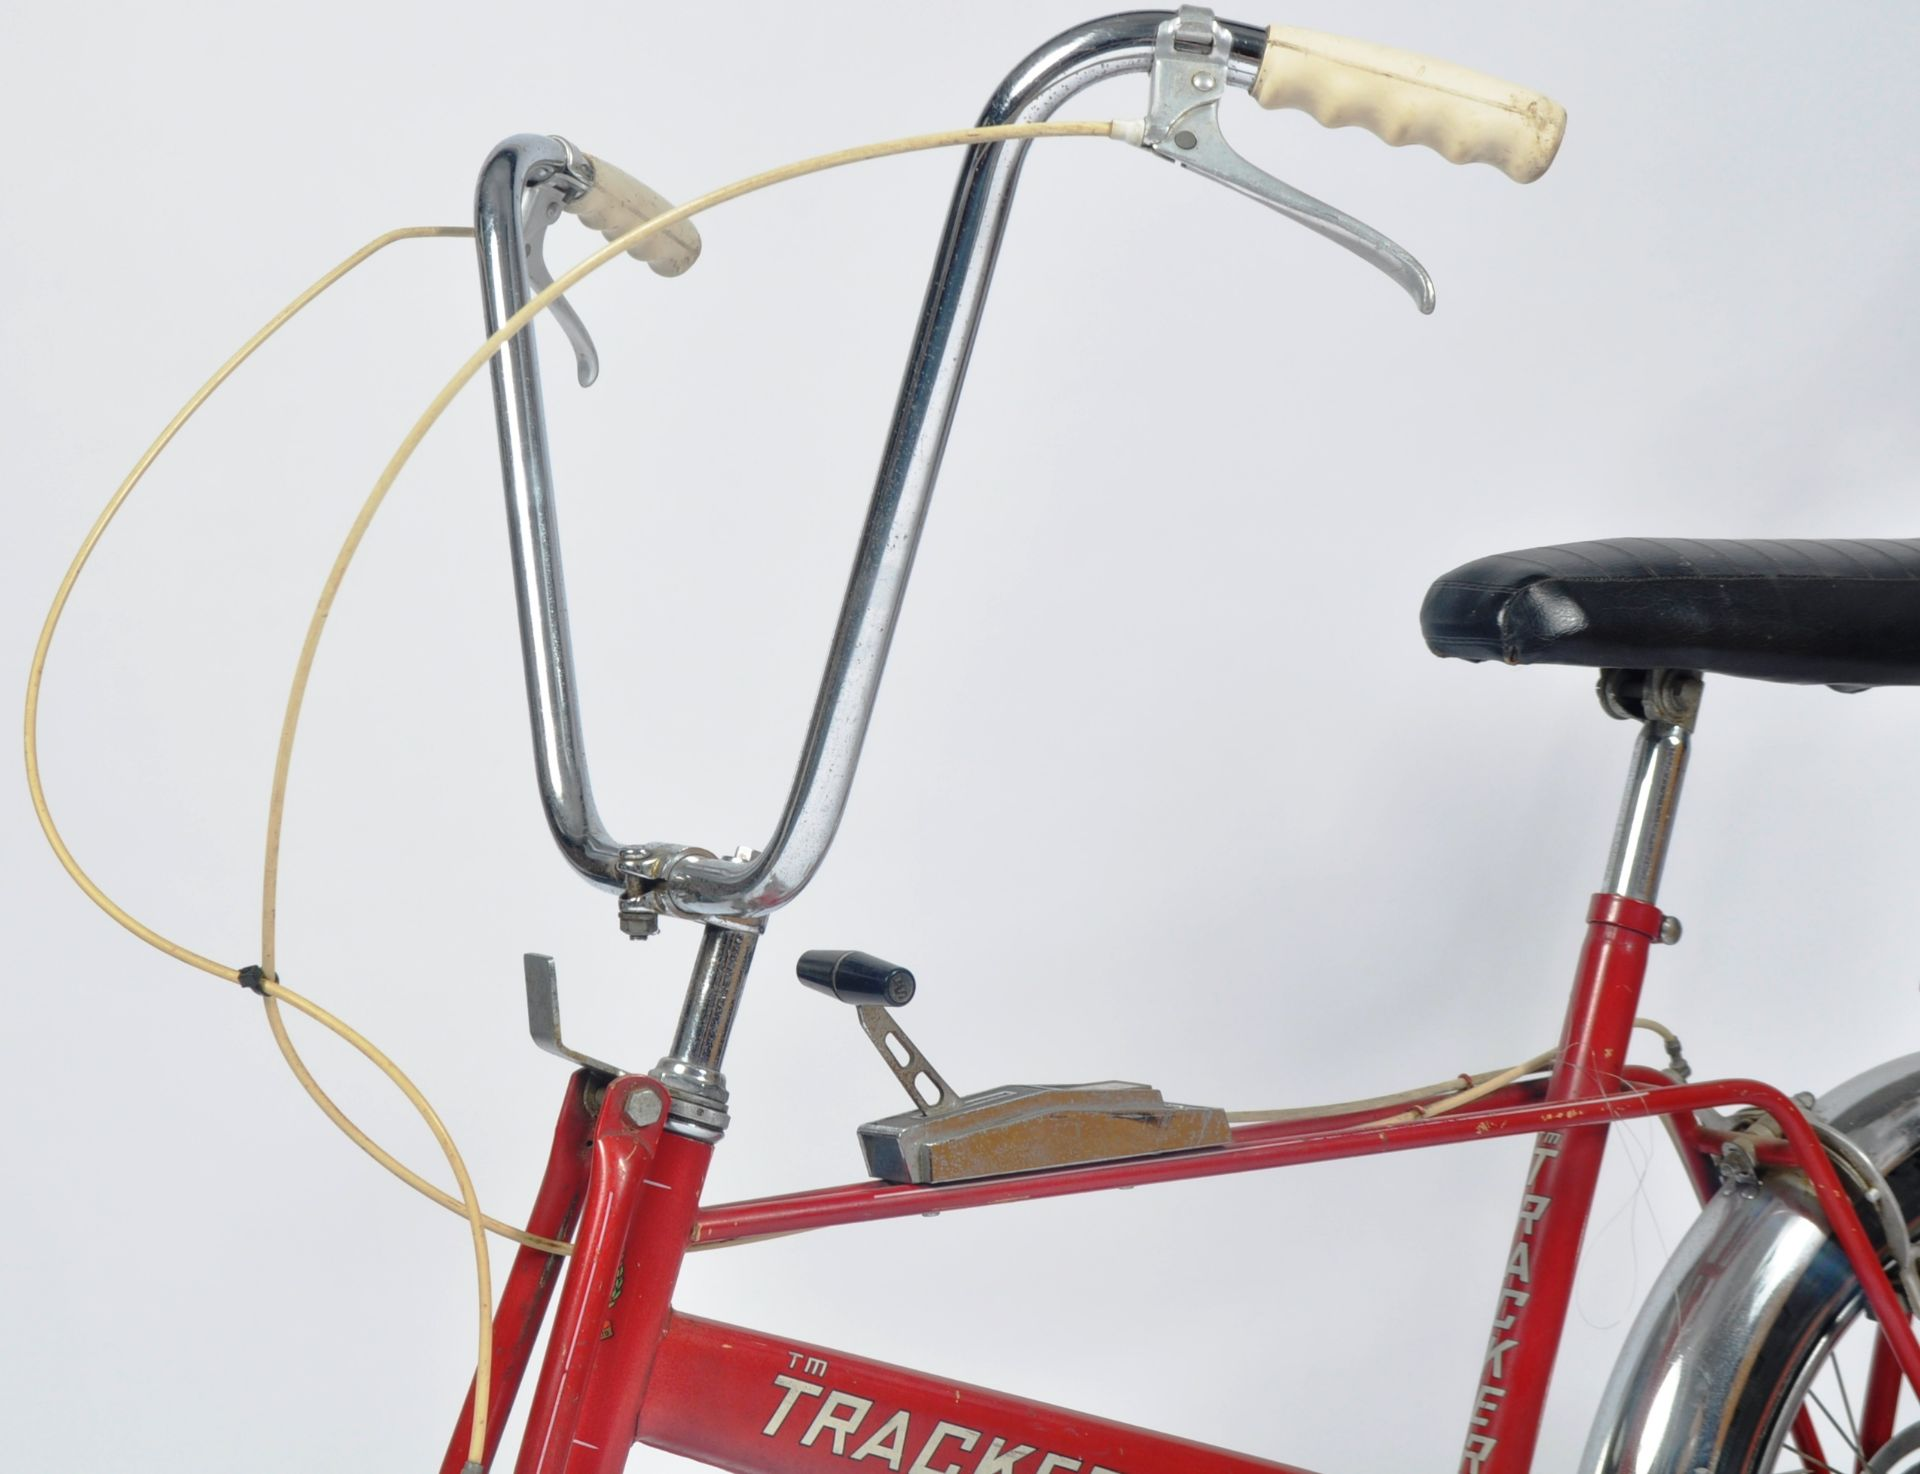 DIANA PRINCESS OF WALES - HER CHILDHOOD TRACKER BICYCLE - Image 6 of 11